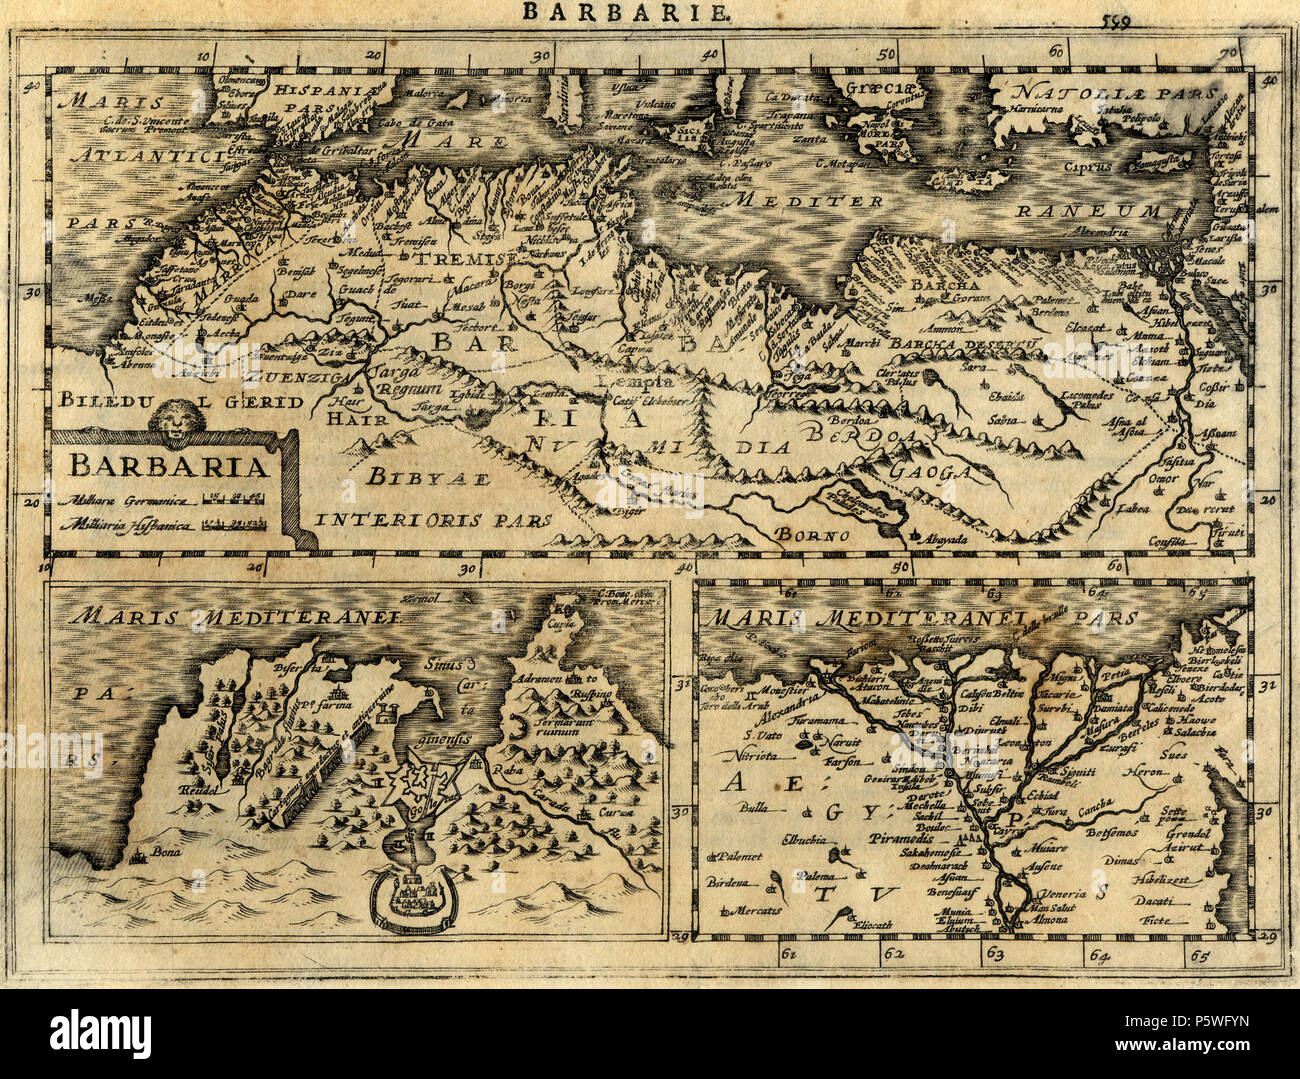 Carte Jcb Algerie.Maghreb Map Stock Photos Maghreb Map Stock Images Alamy